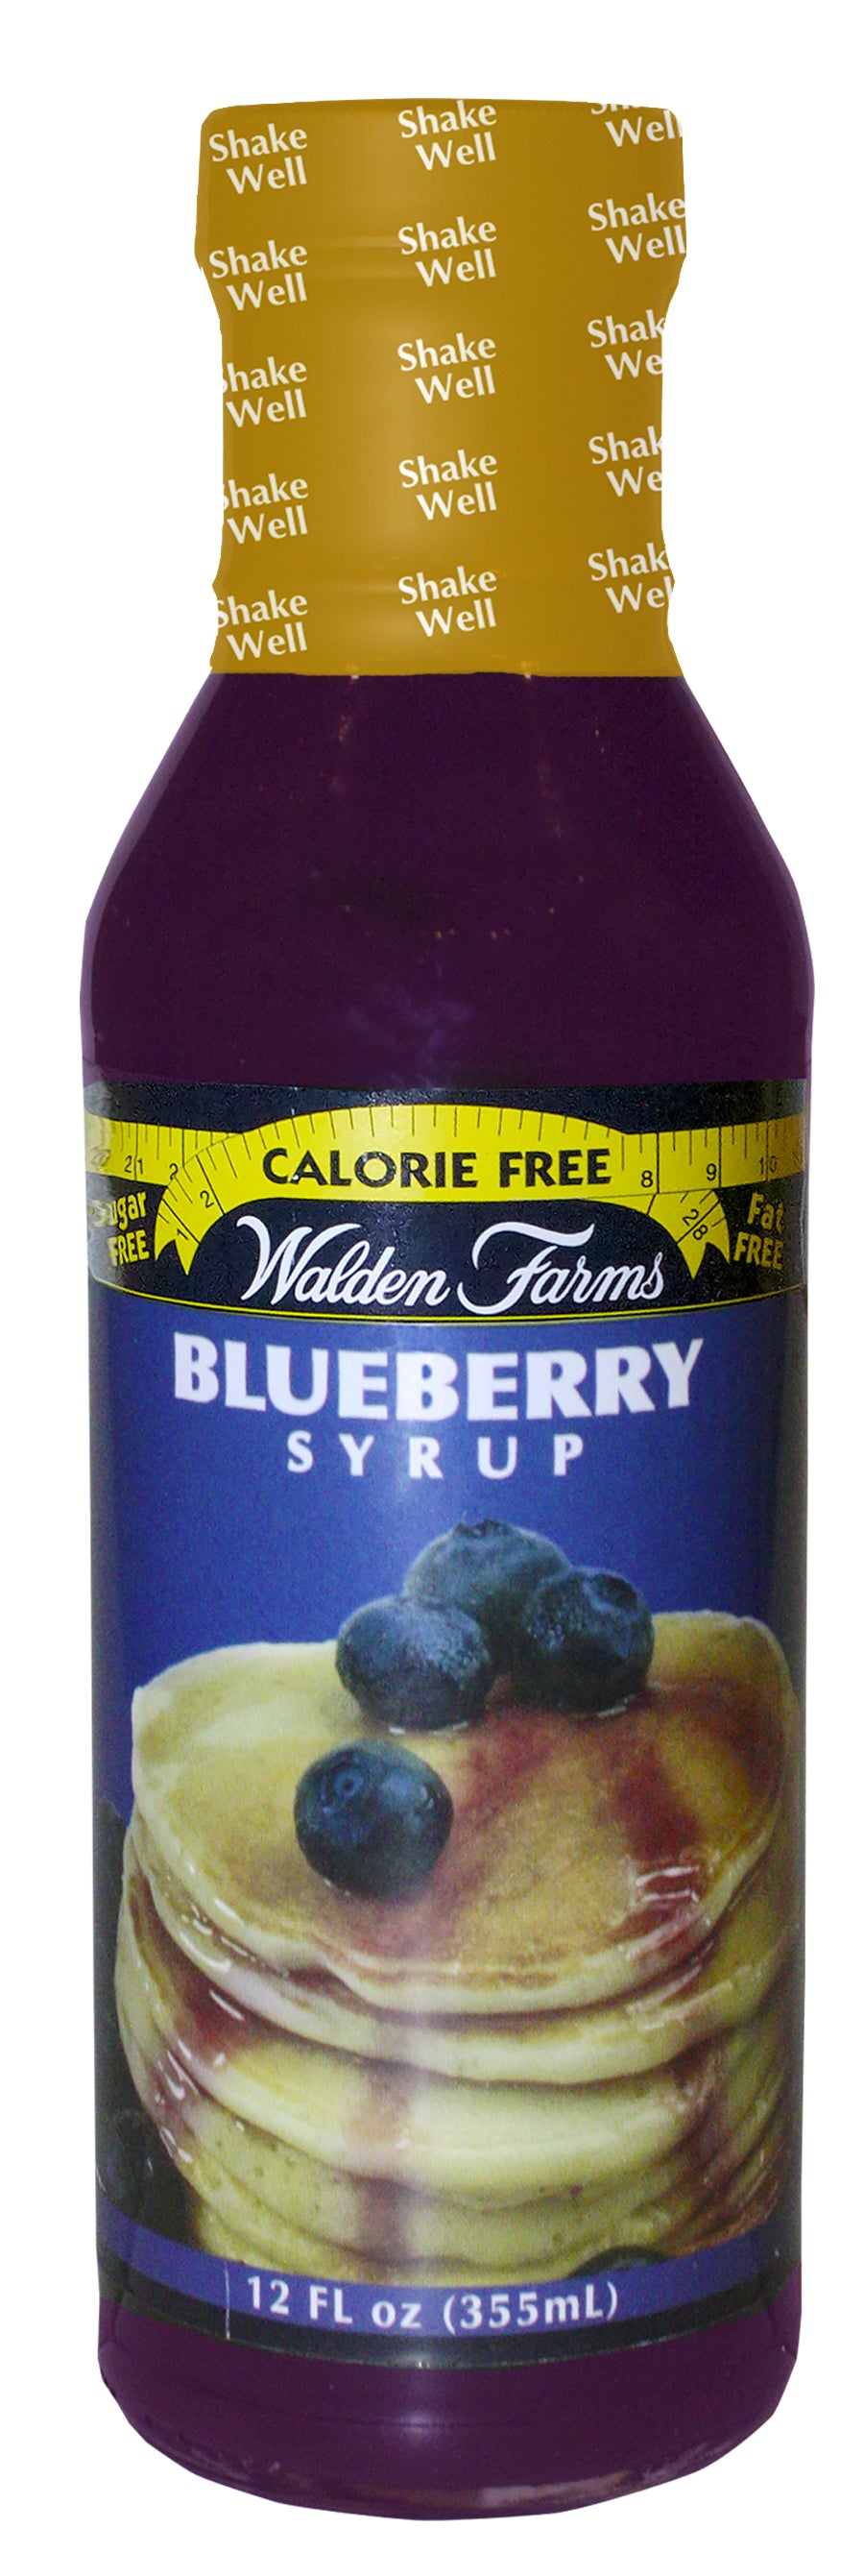 WF Blueberry Syrup